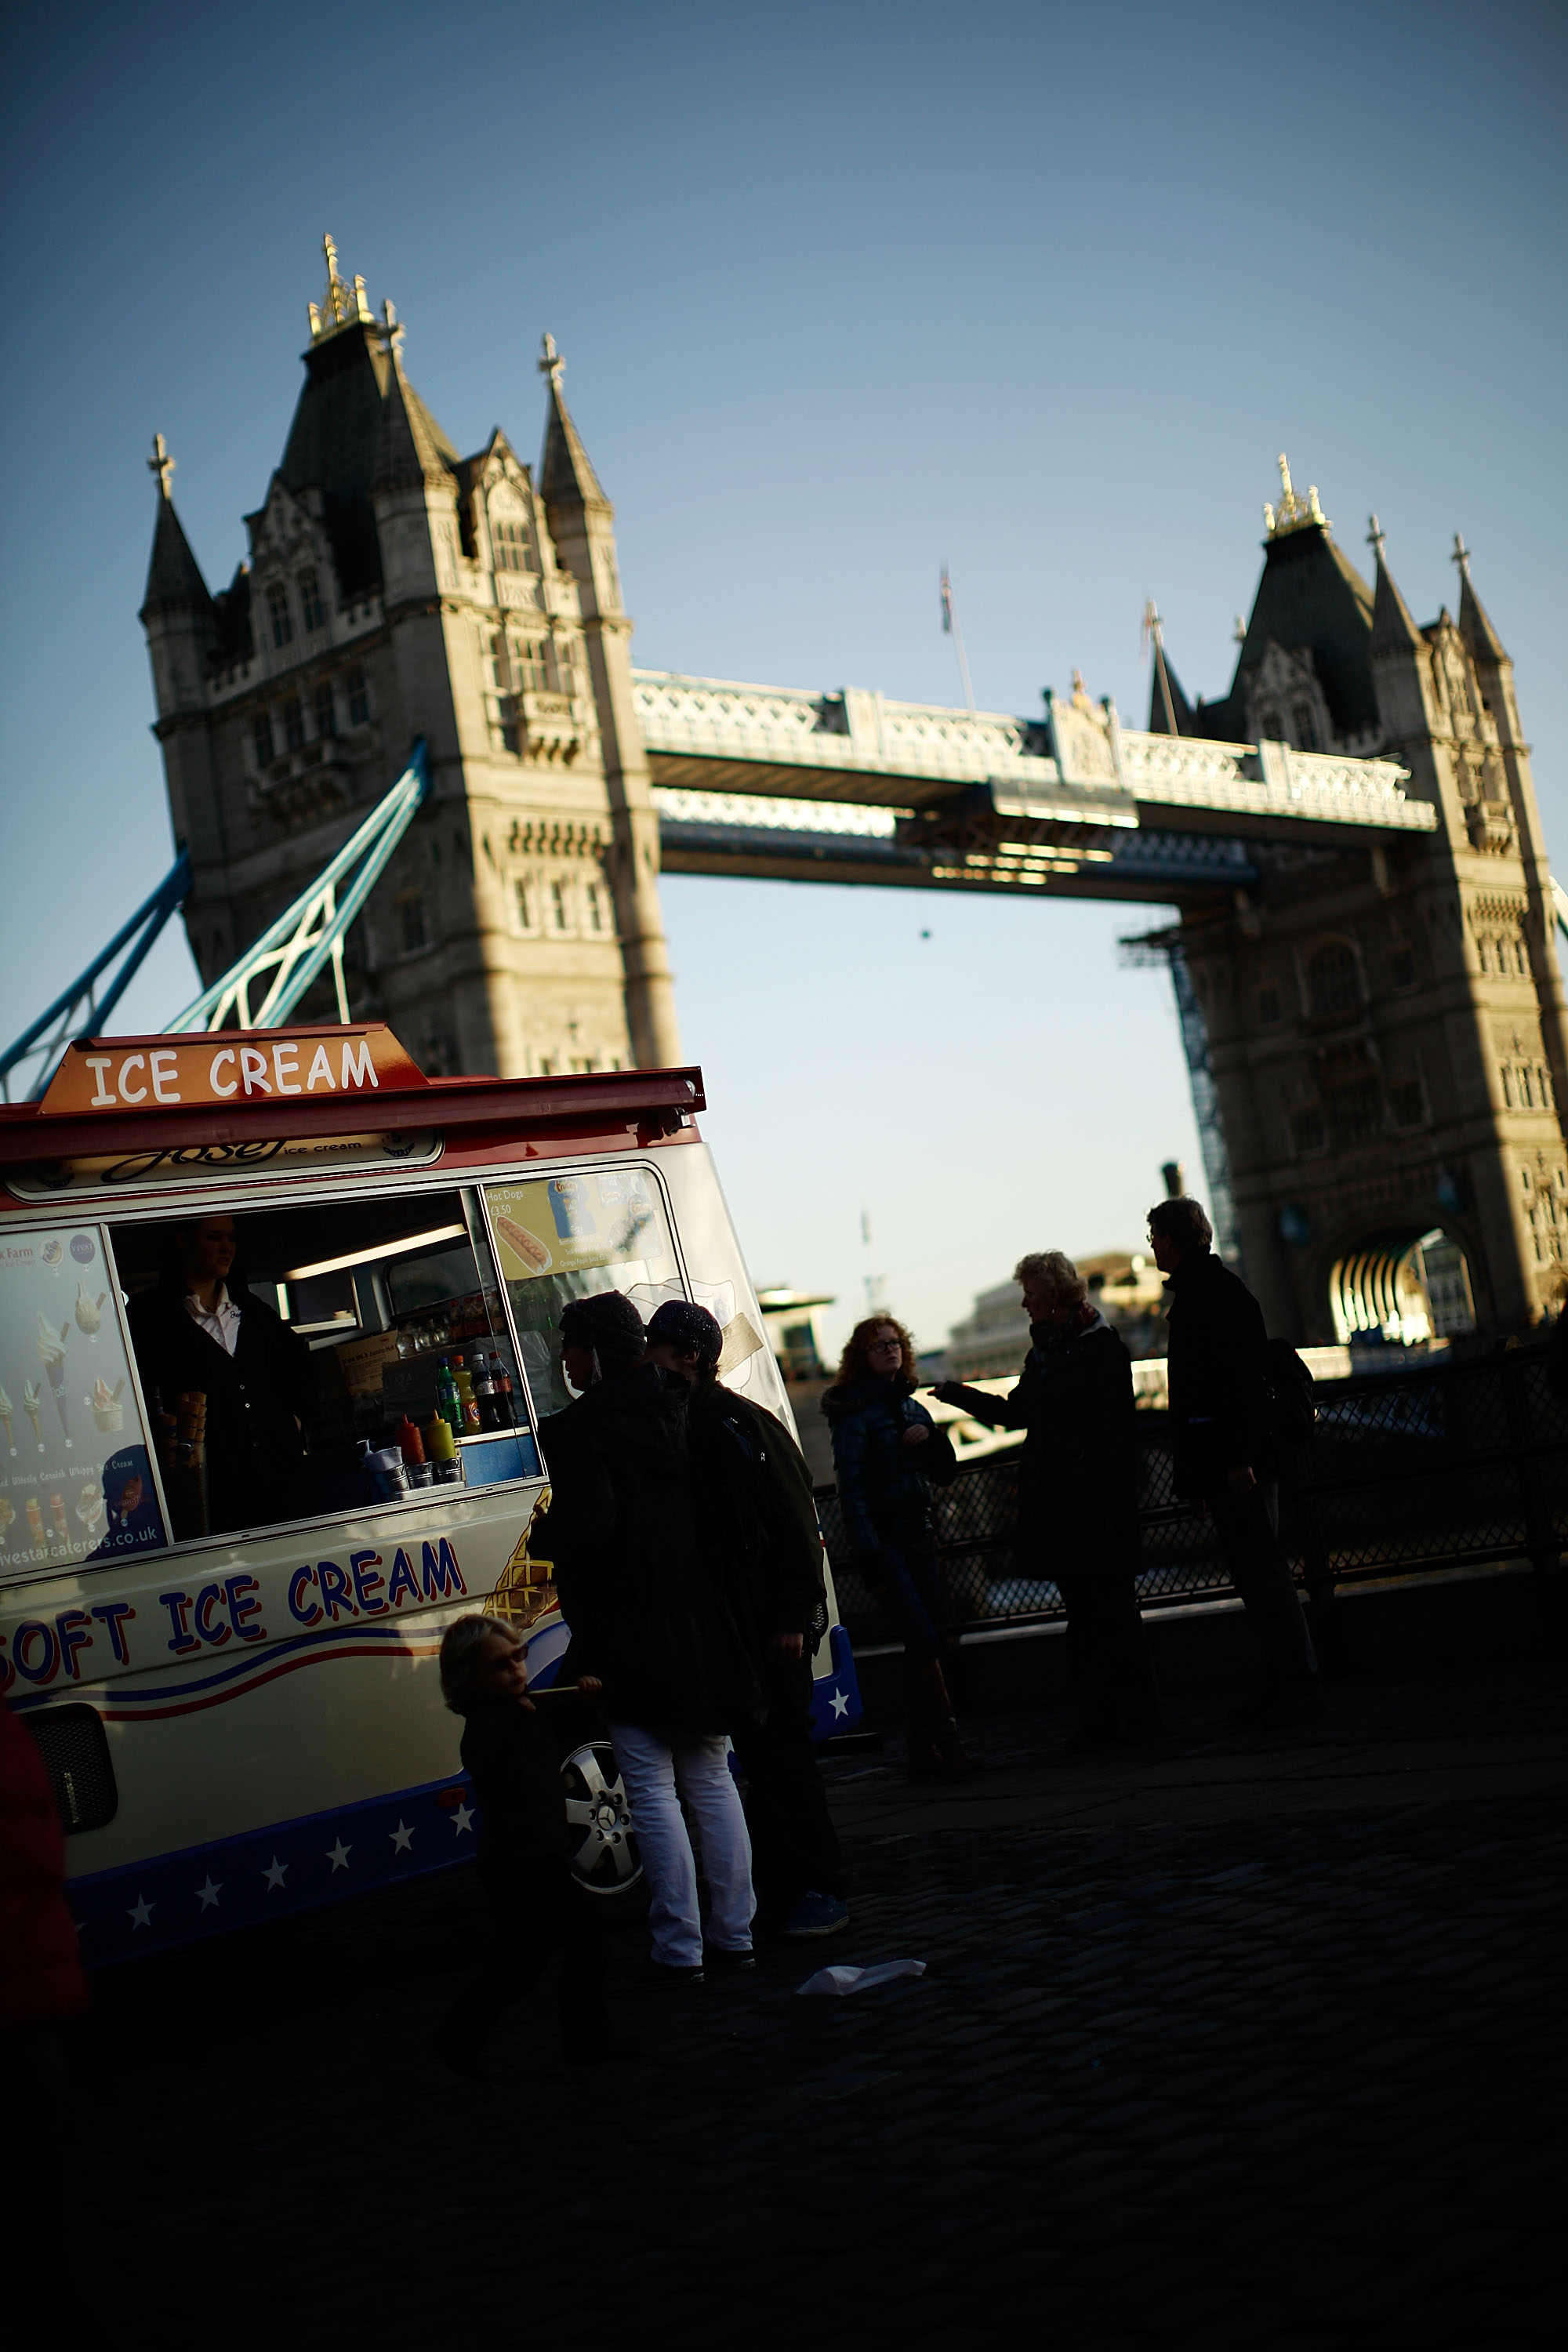 LONDON, ENGLAND - OCTOBER 25:  Views of Tower Bridge on October 25, 2010 in London, England. With less than two years to go until the Olympic Games  the capital is preparing for large numbers of visiting tourists.  (Photo by Matthew Lloyd/Getty Images)